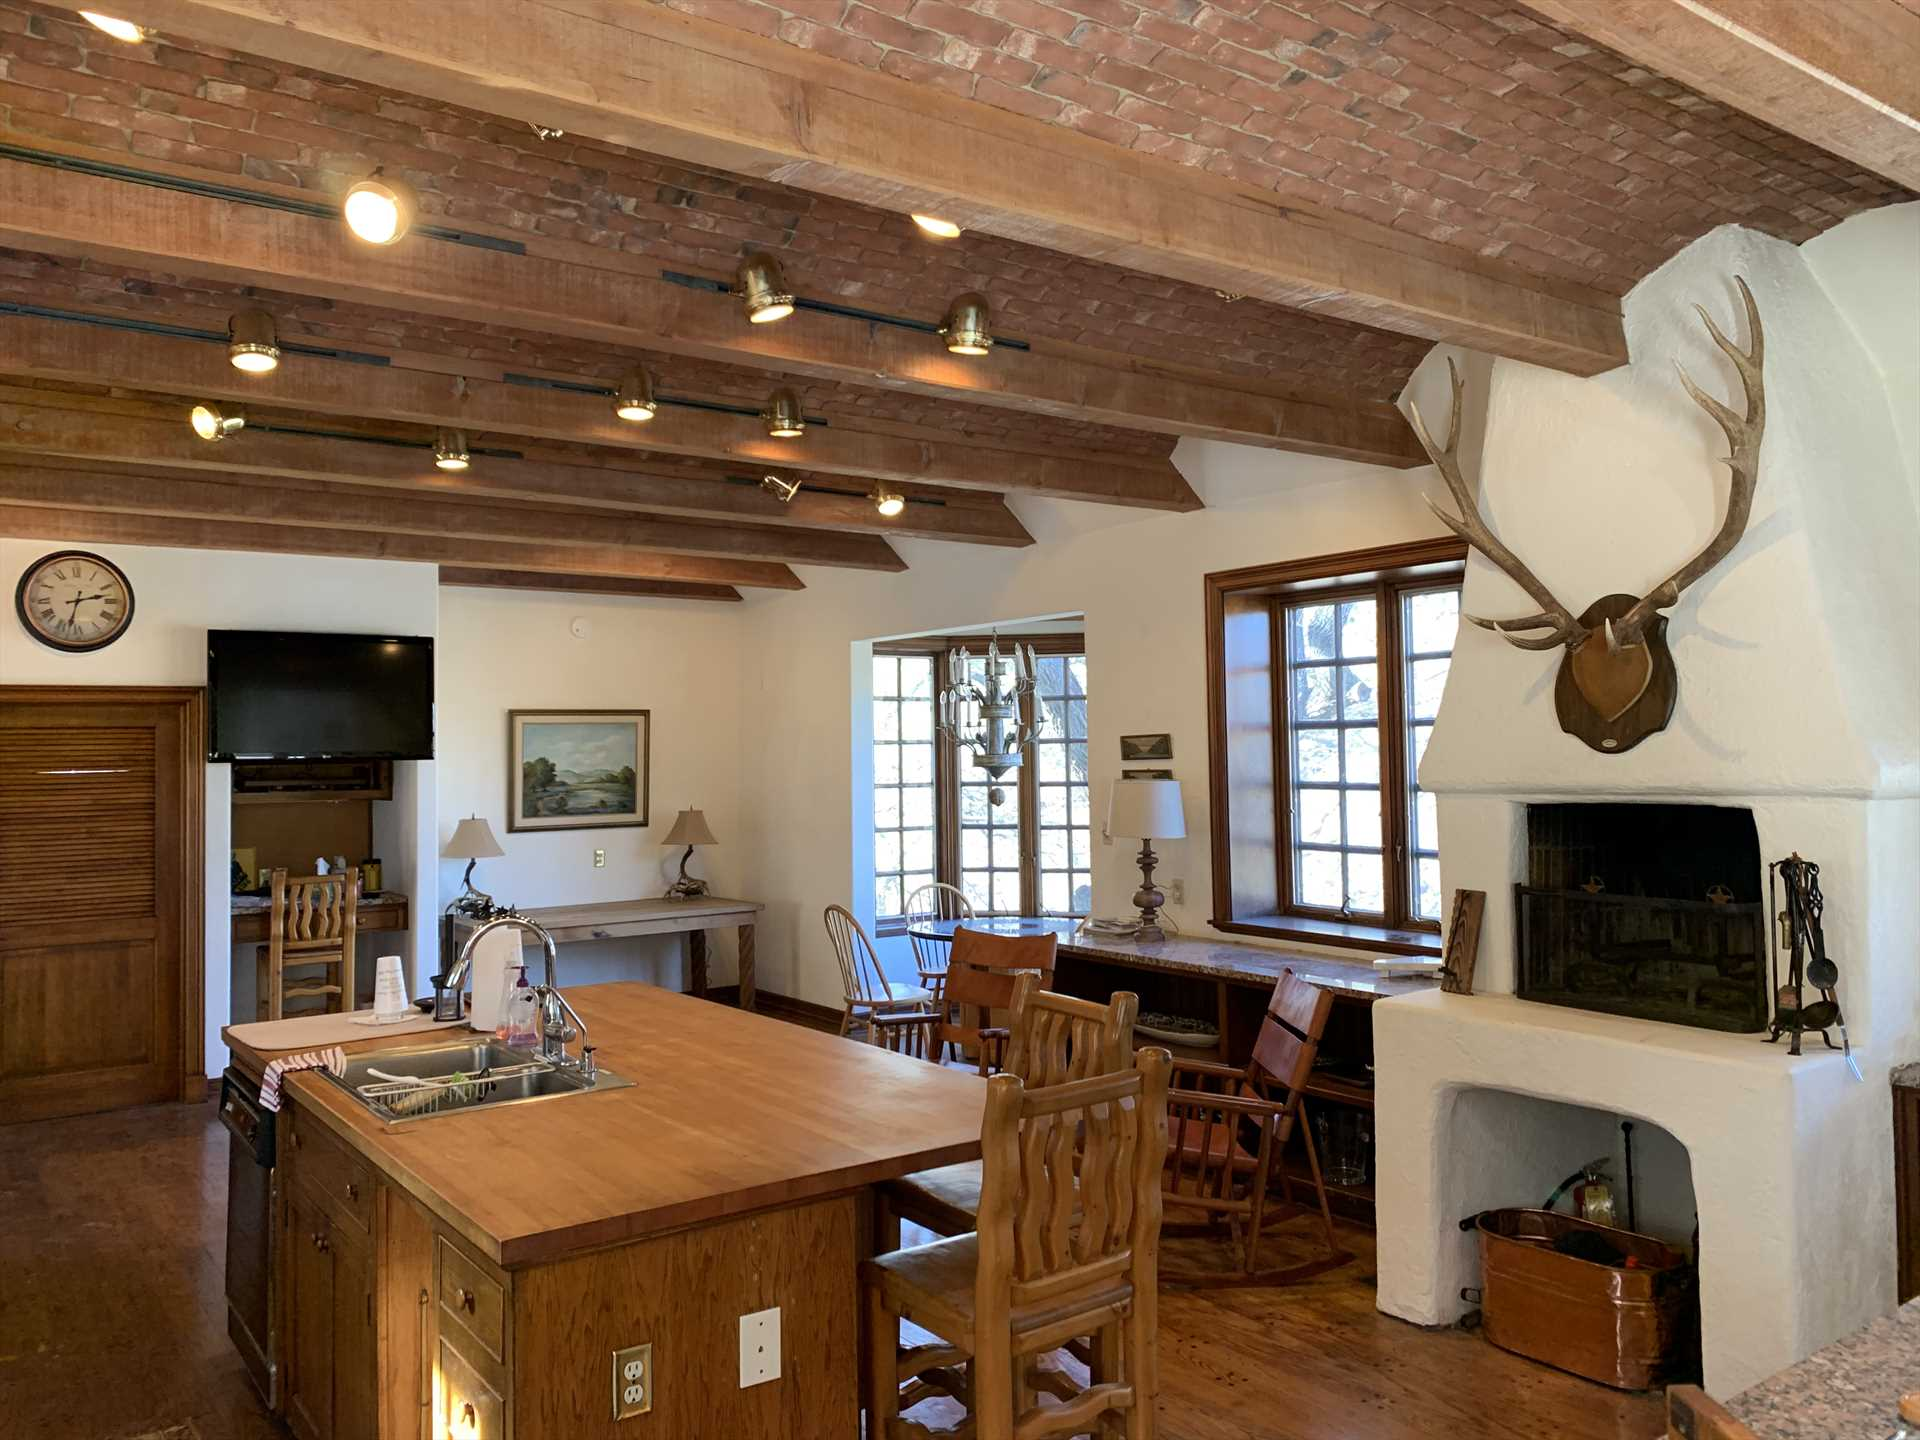 Beamed ceilings and track lighting add stylish and functional touches in the gathering area near the Homestead's kitchen, which is equipped with all the appliances, cookware, and serving ware you'll need.